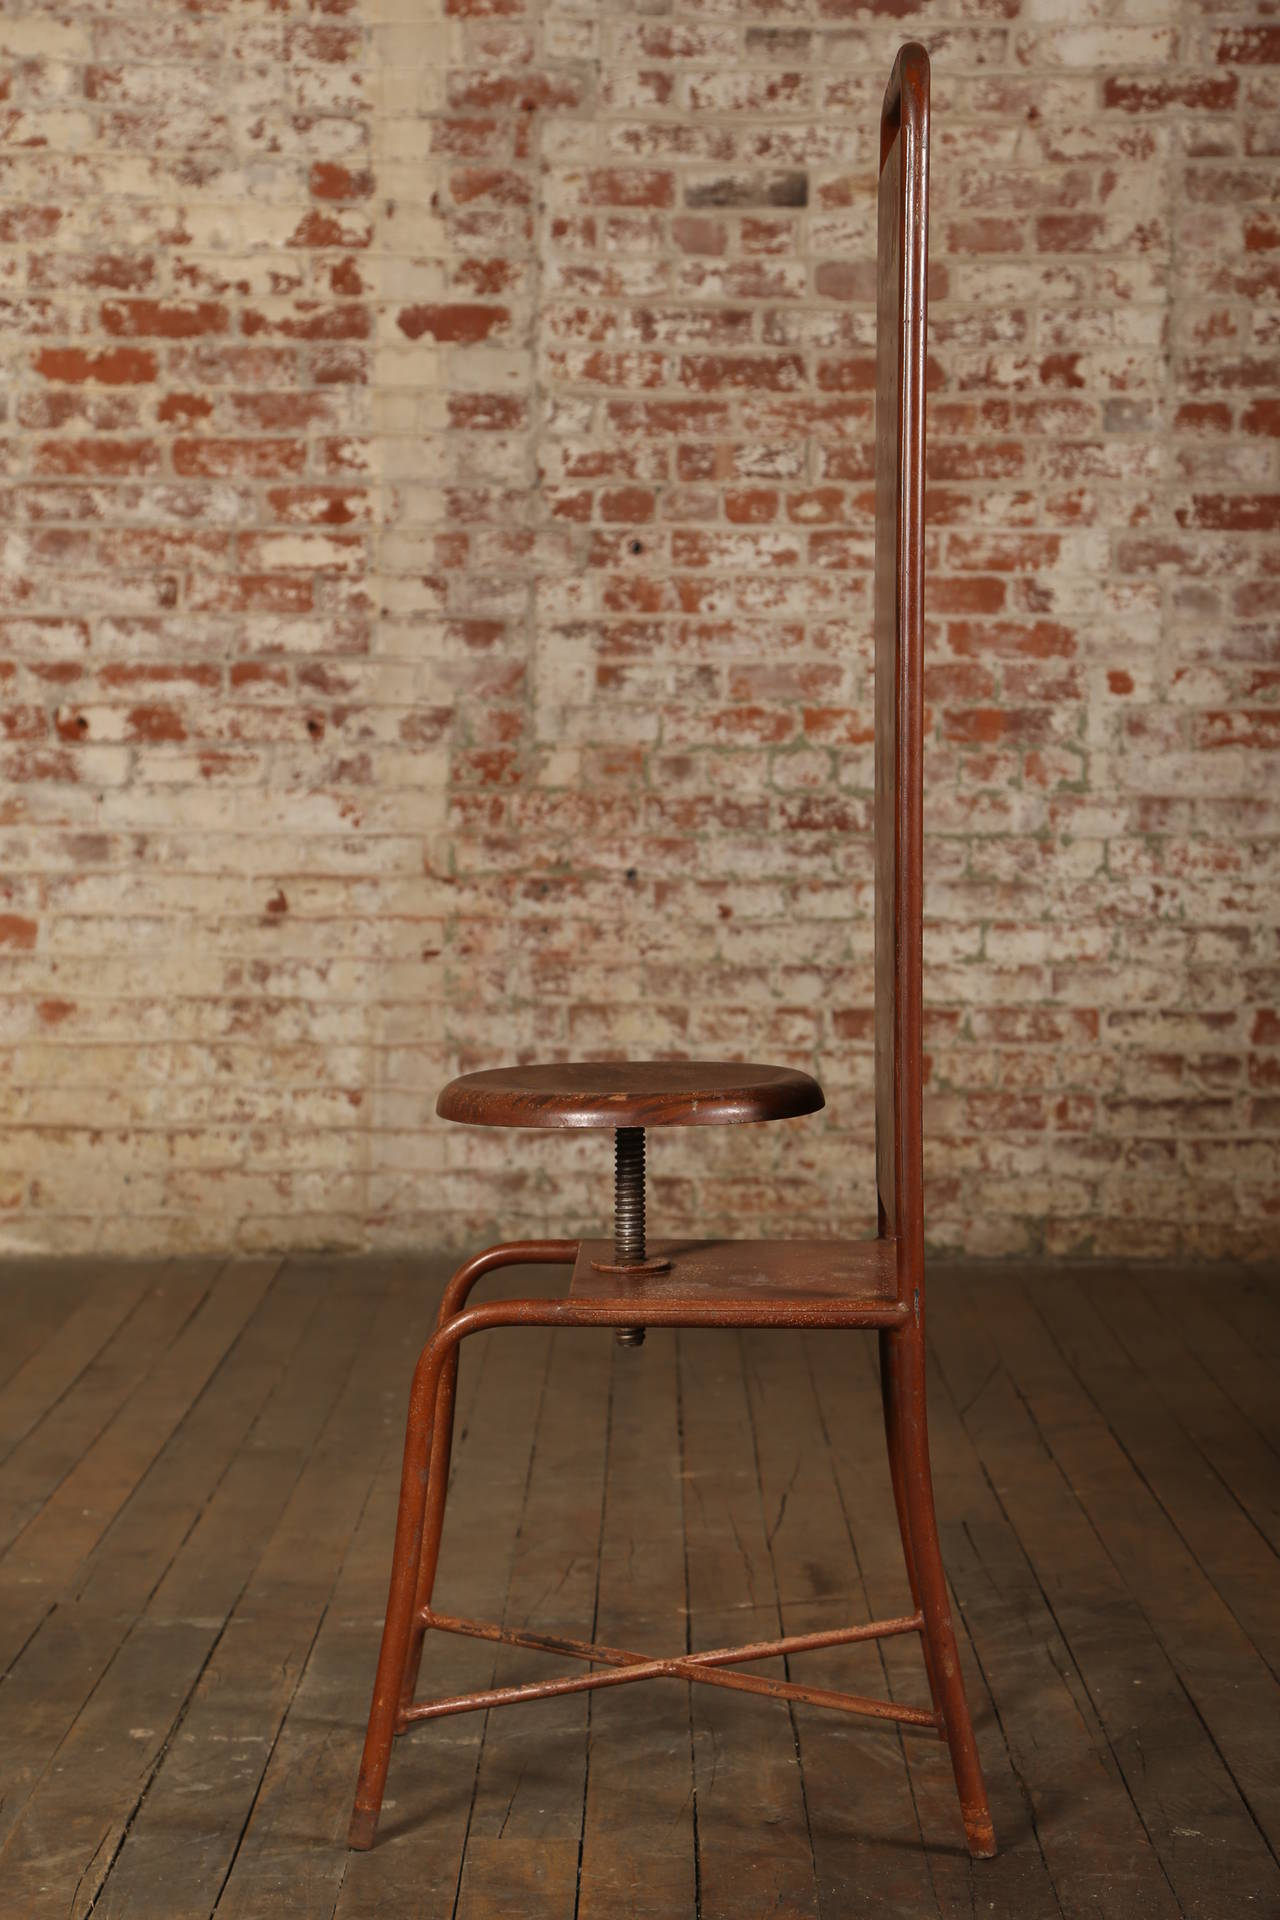 Original, Vintage Adjustable Medical Stool or Chair In Good Condition For Sale In Oakville, CT